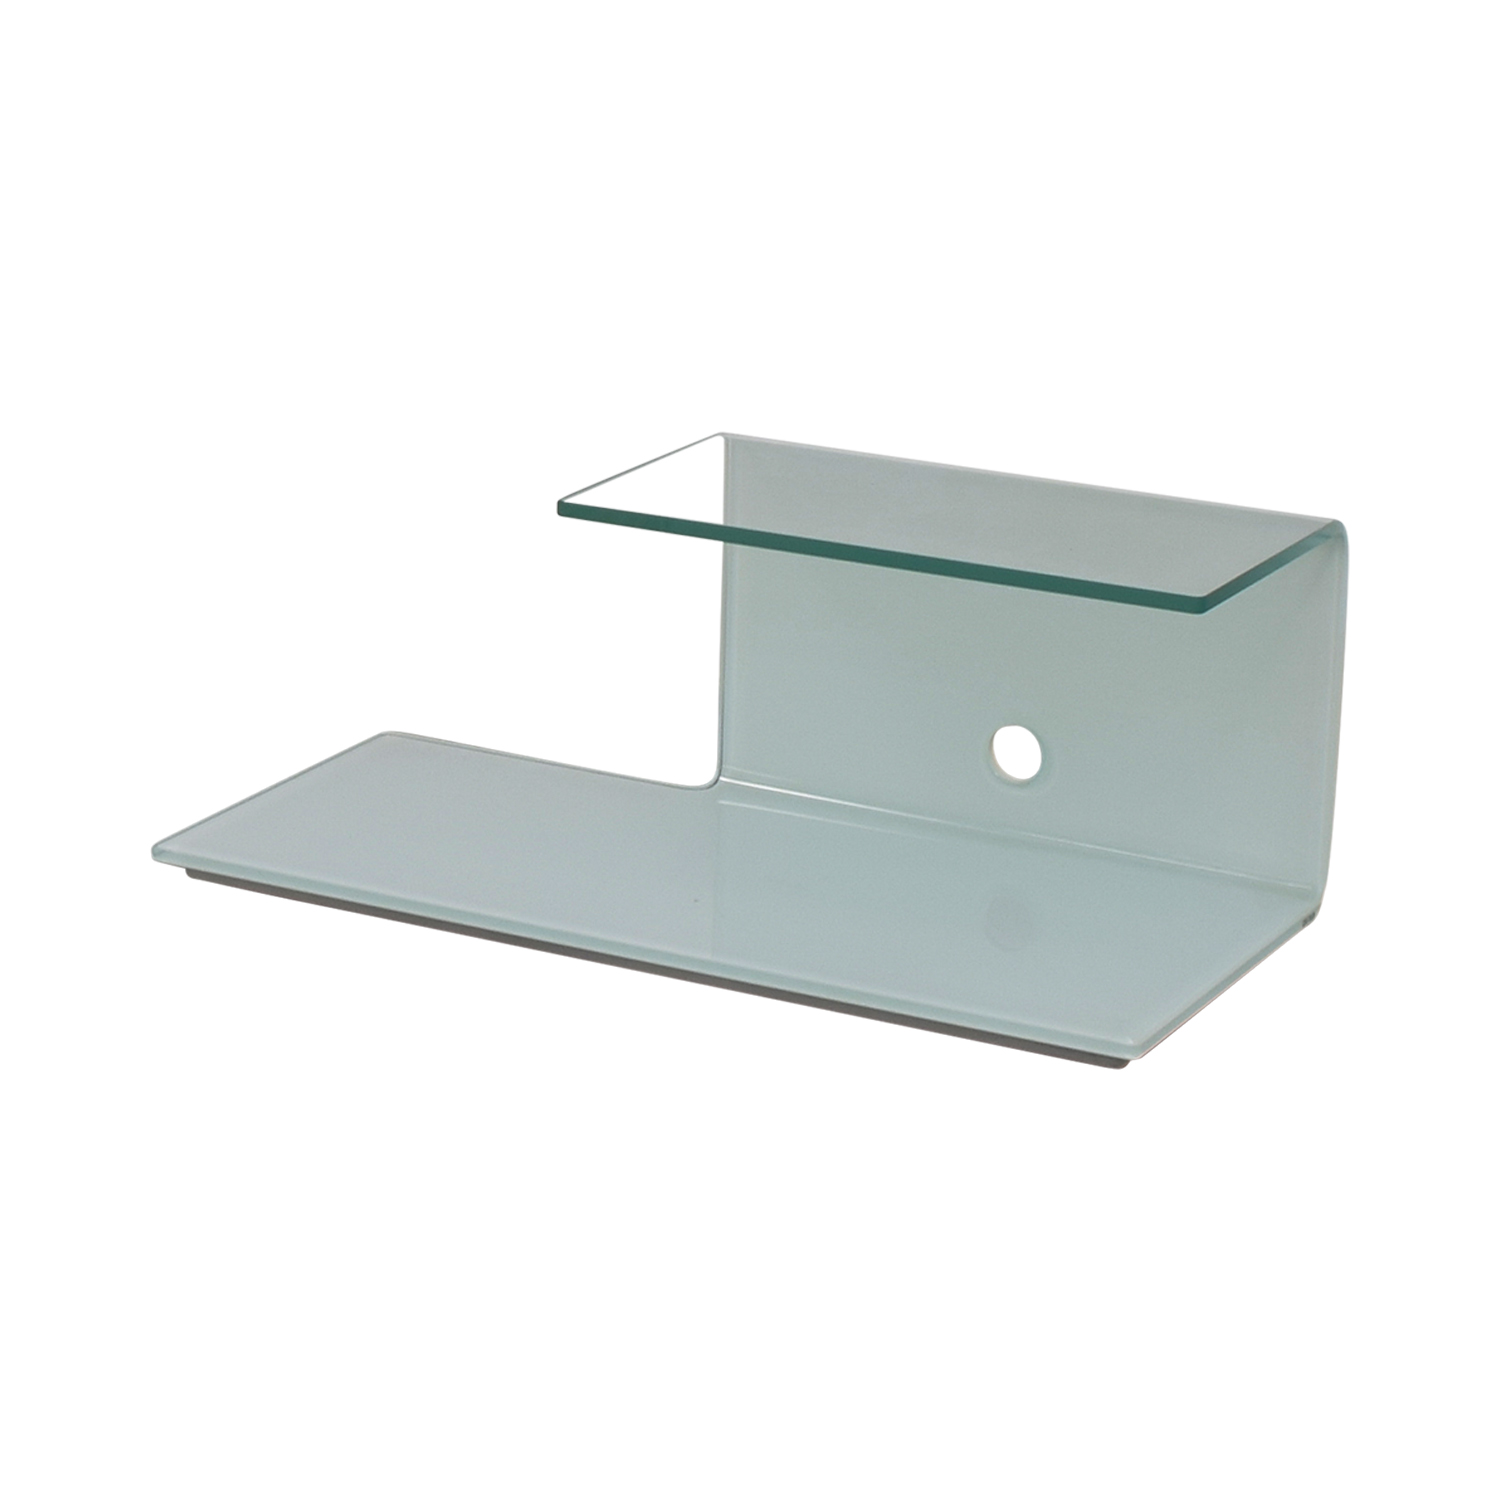 Sovet Sovet Toby Glass and White TV Stand discount